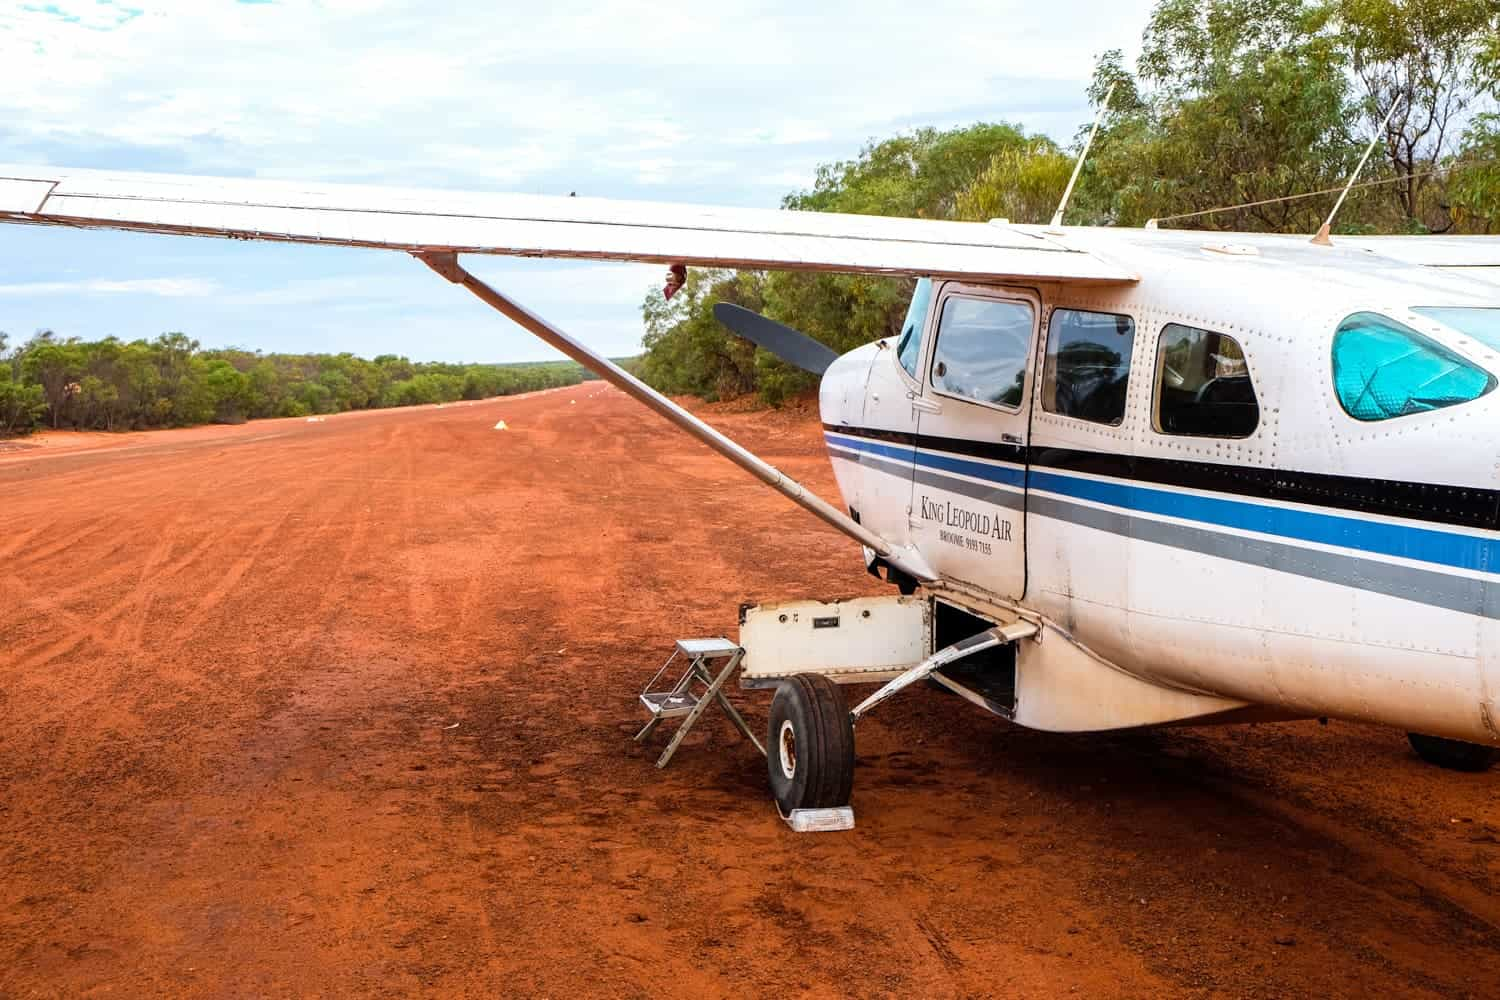 Broome Kimberly Outback of Western Australia scenic flight